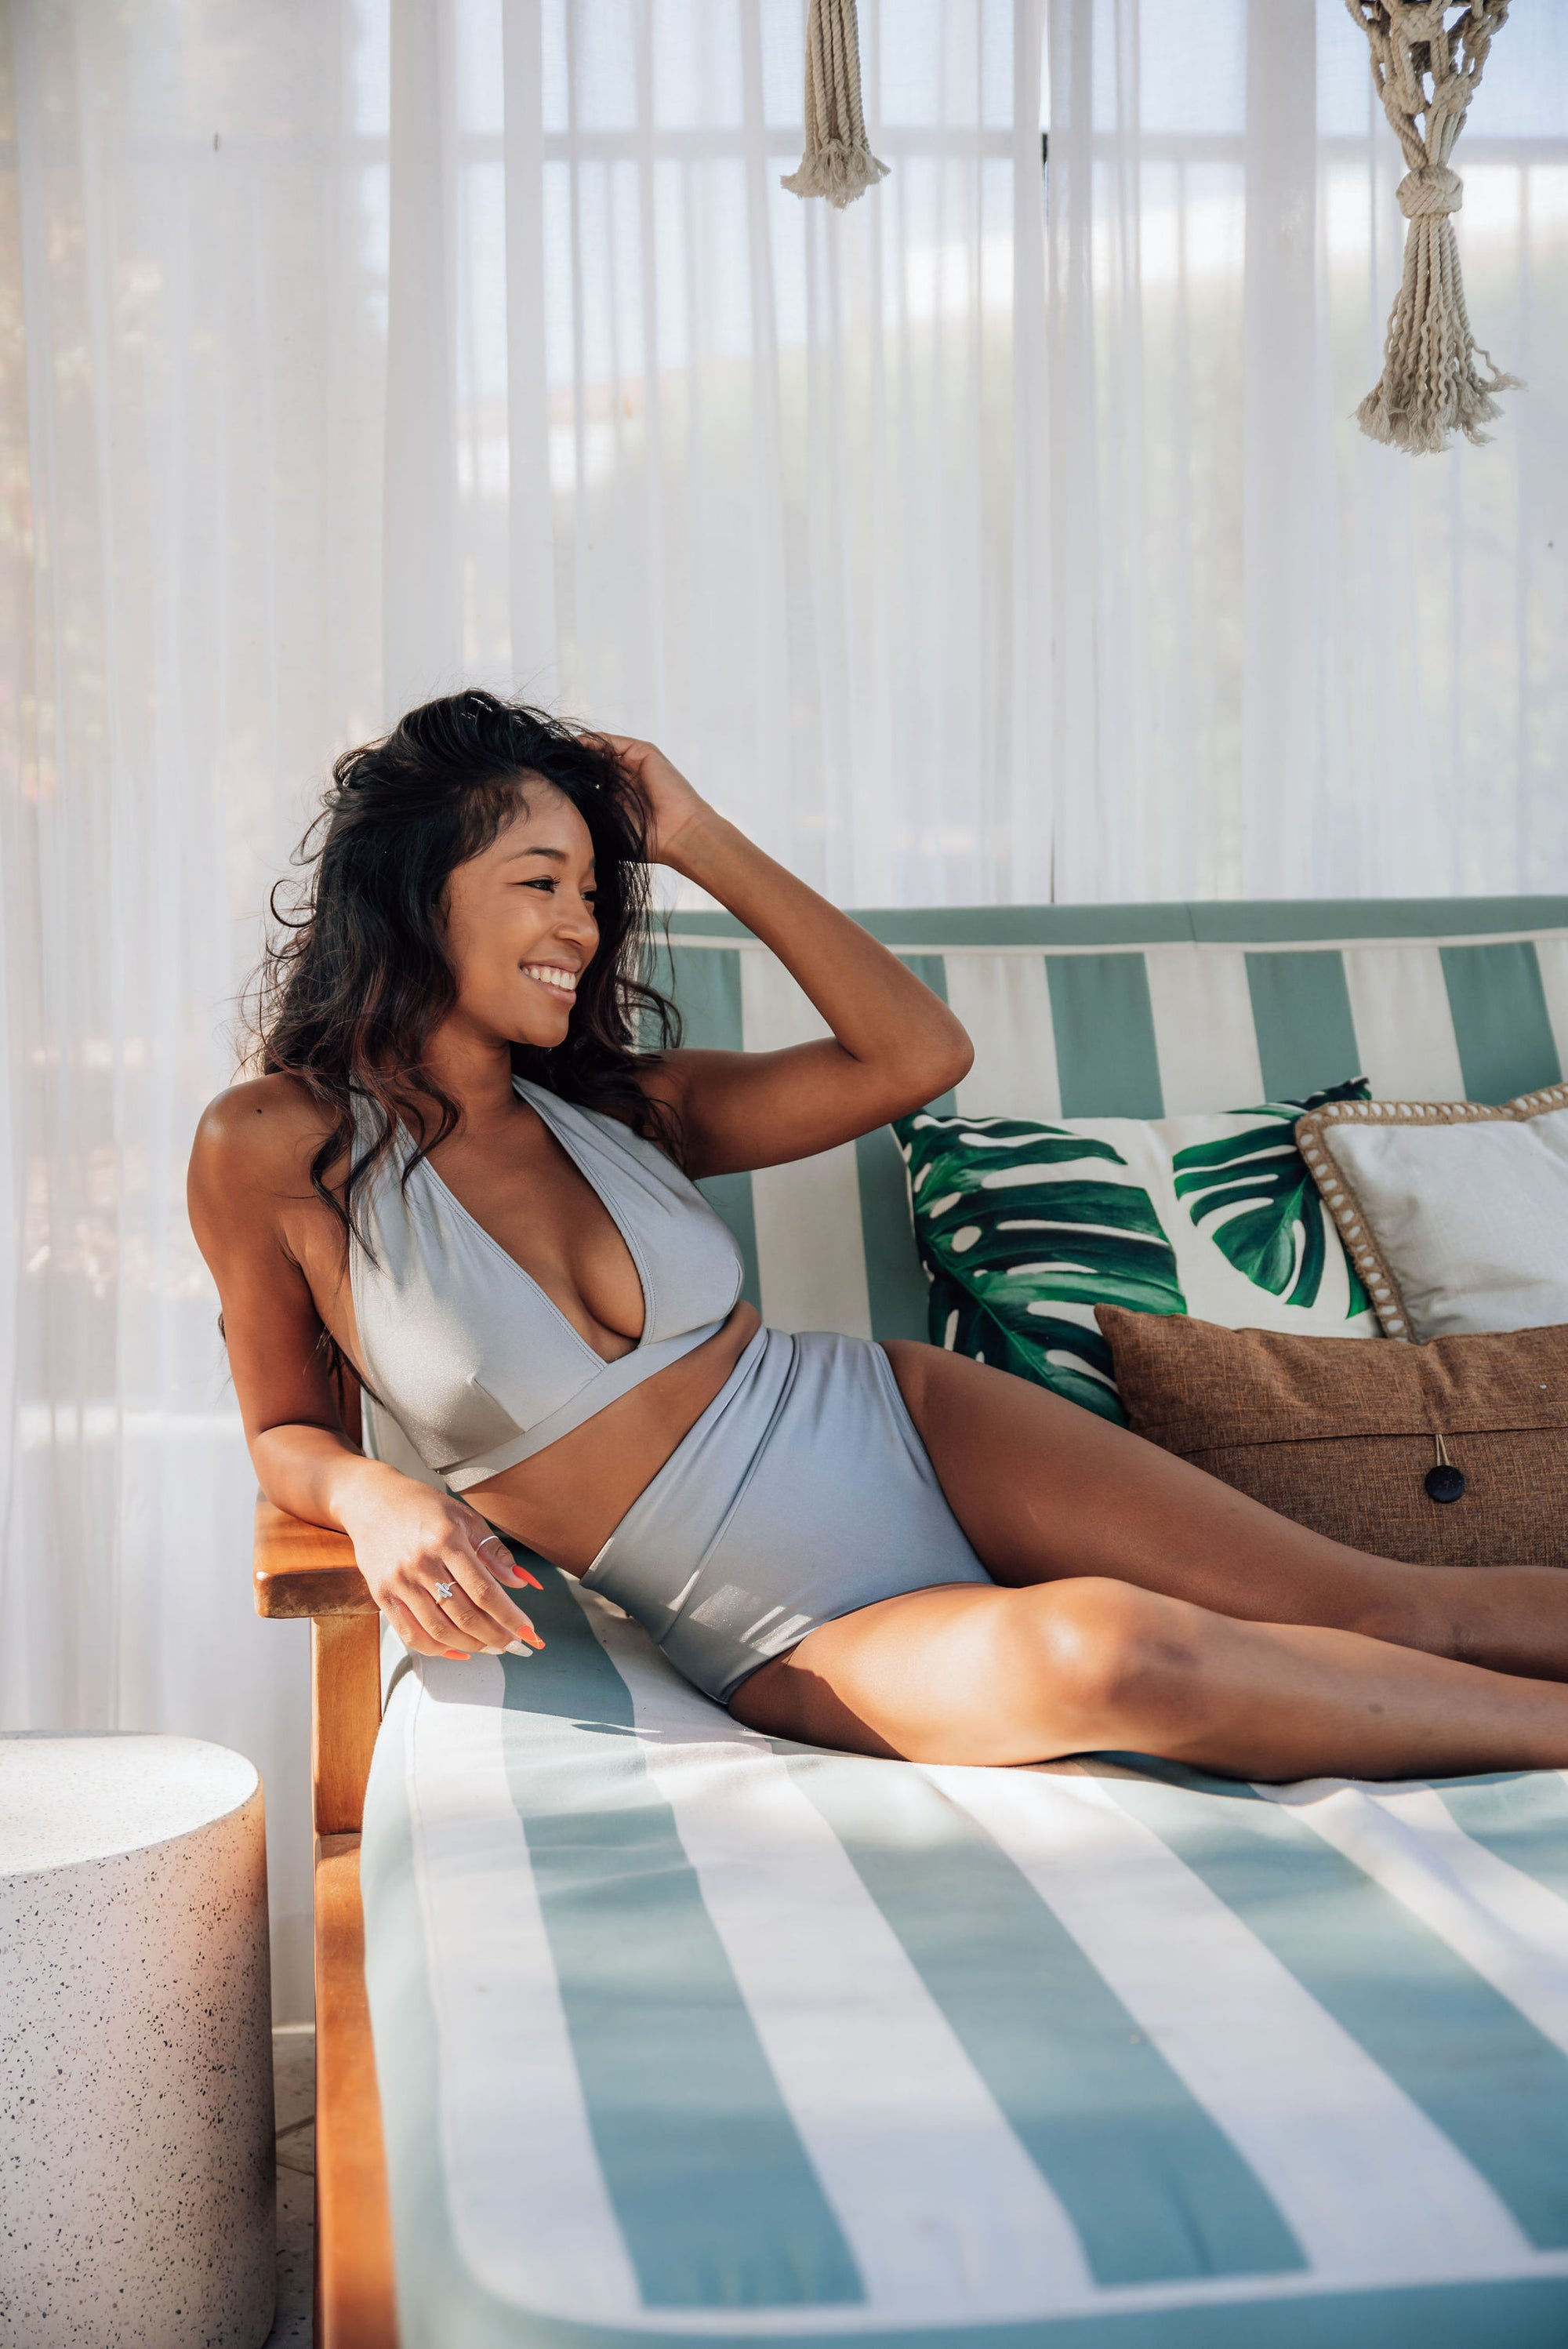 Woman gently playing with lightly curled black hair lying in boho style cabana wearing a silver metallic triangle top with coordinating high waisted bottoms